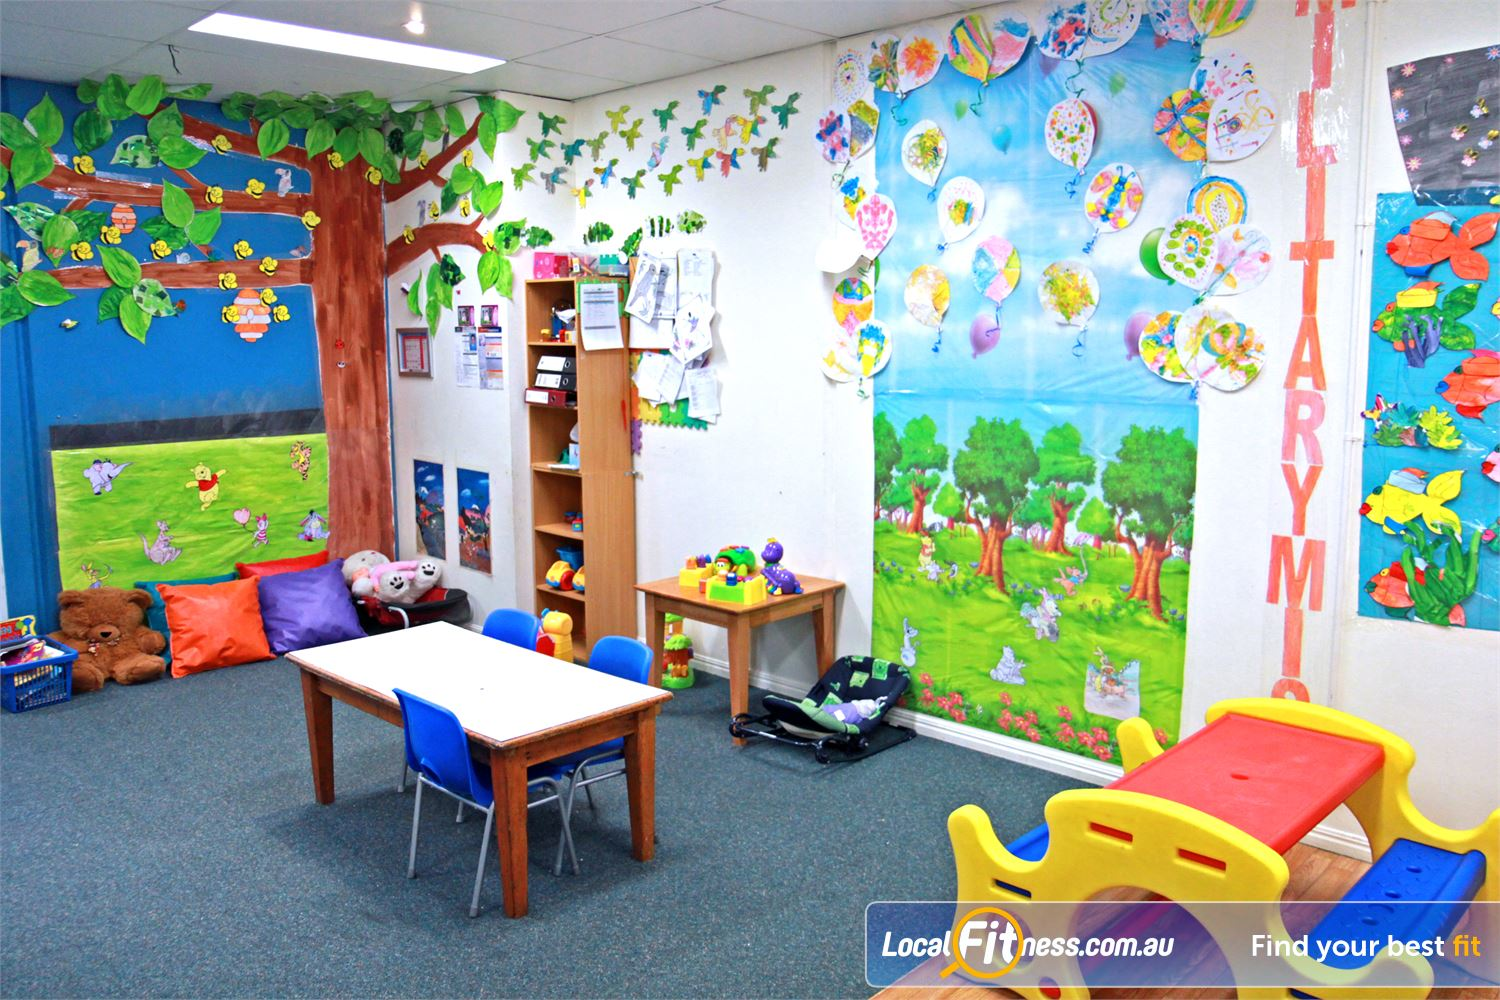 Fernwood Fitness Petrie Keep your little ones close by at all times at Fernwood gym Petrie.